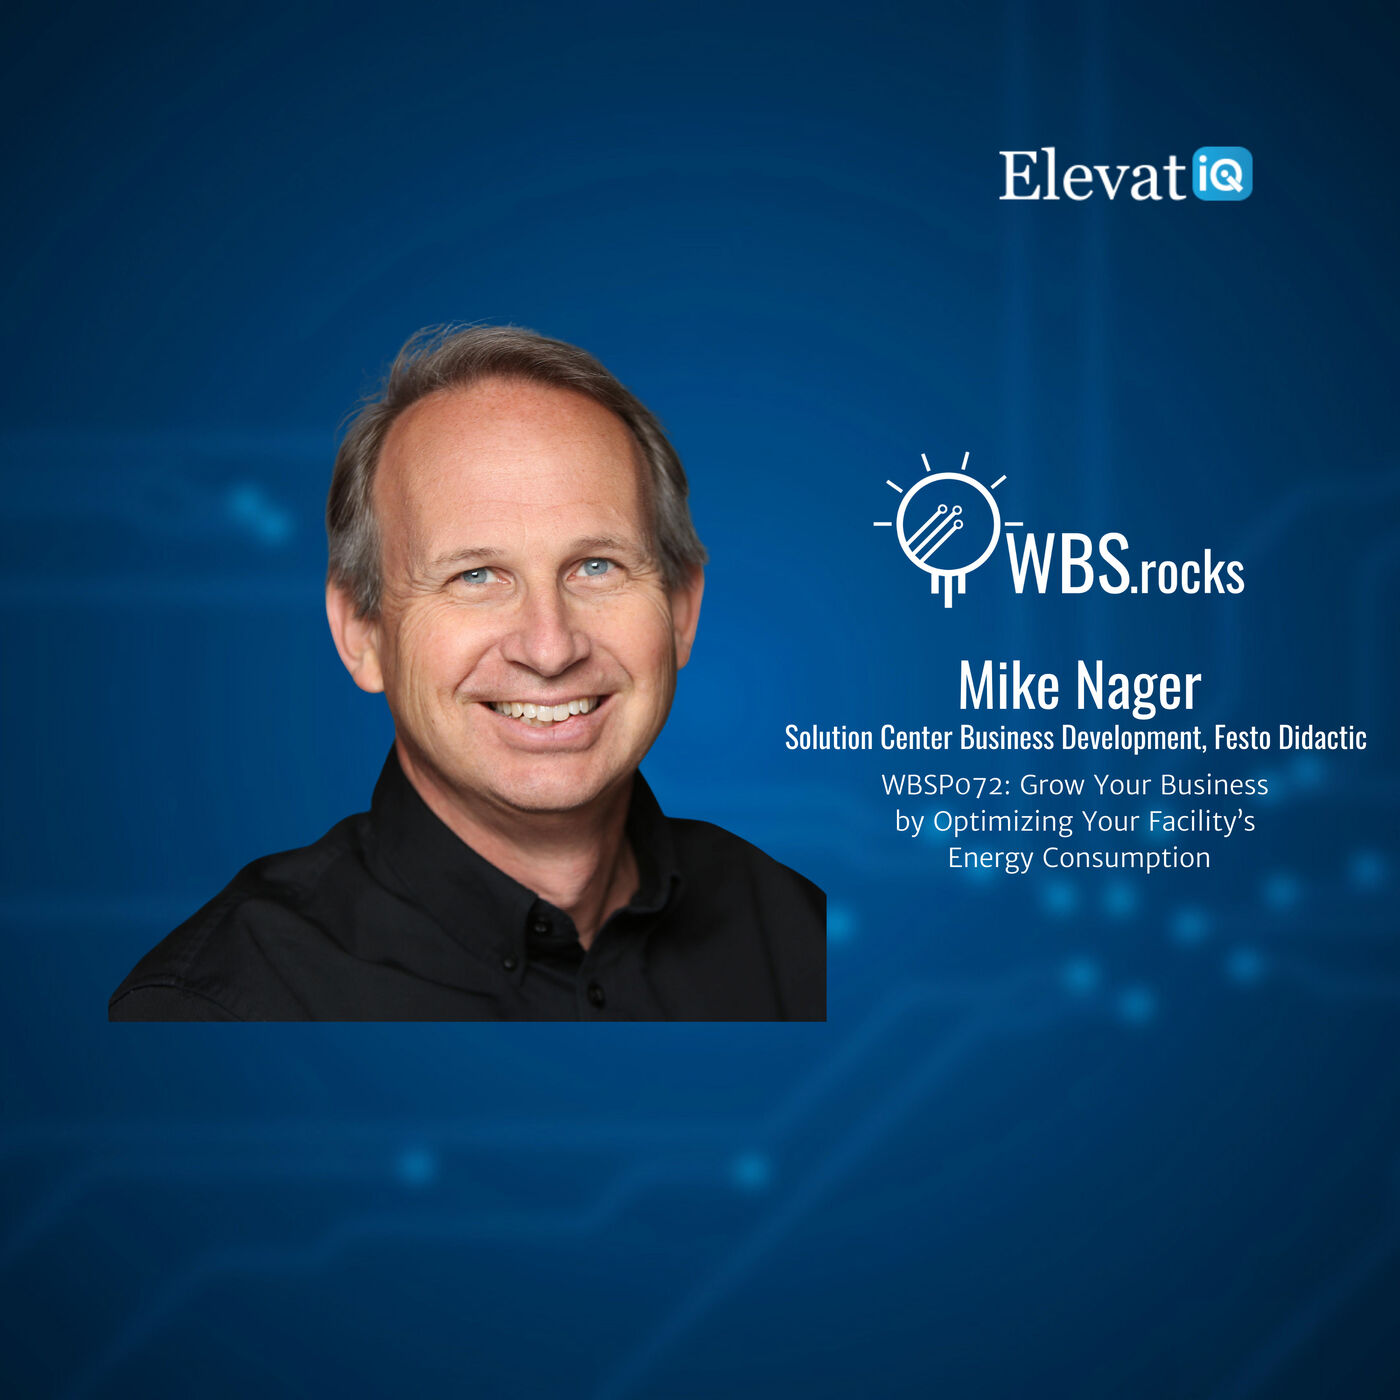 WBSP072: Grow Your Business by Optimizing Your Facility's Energy Consumption w/ Mike Nager